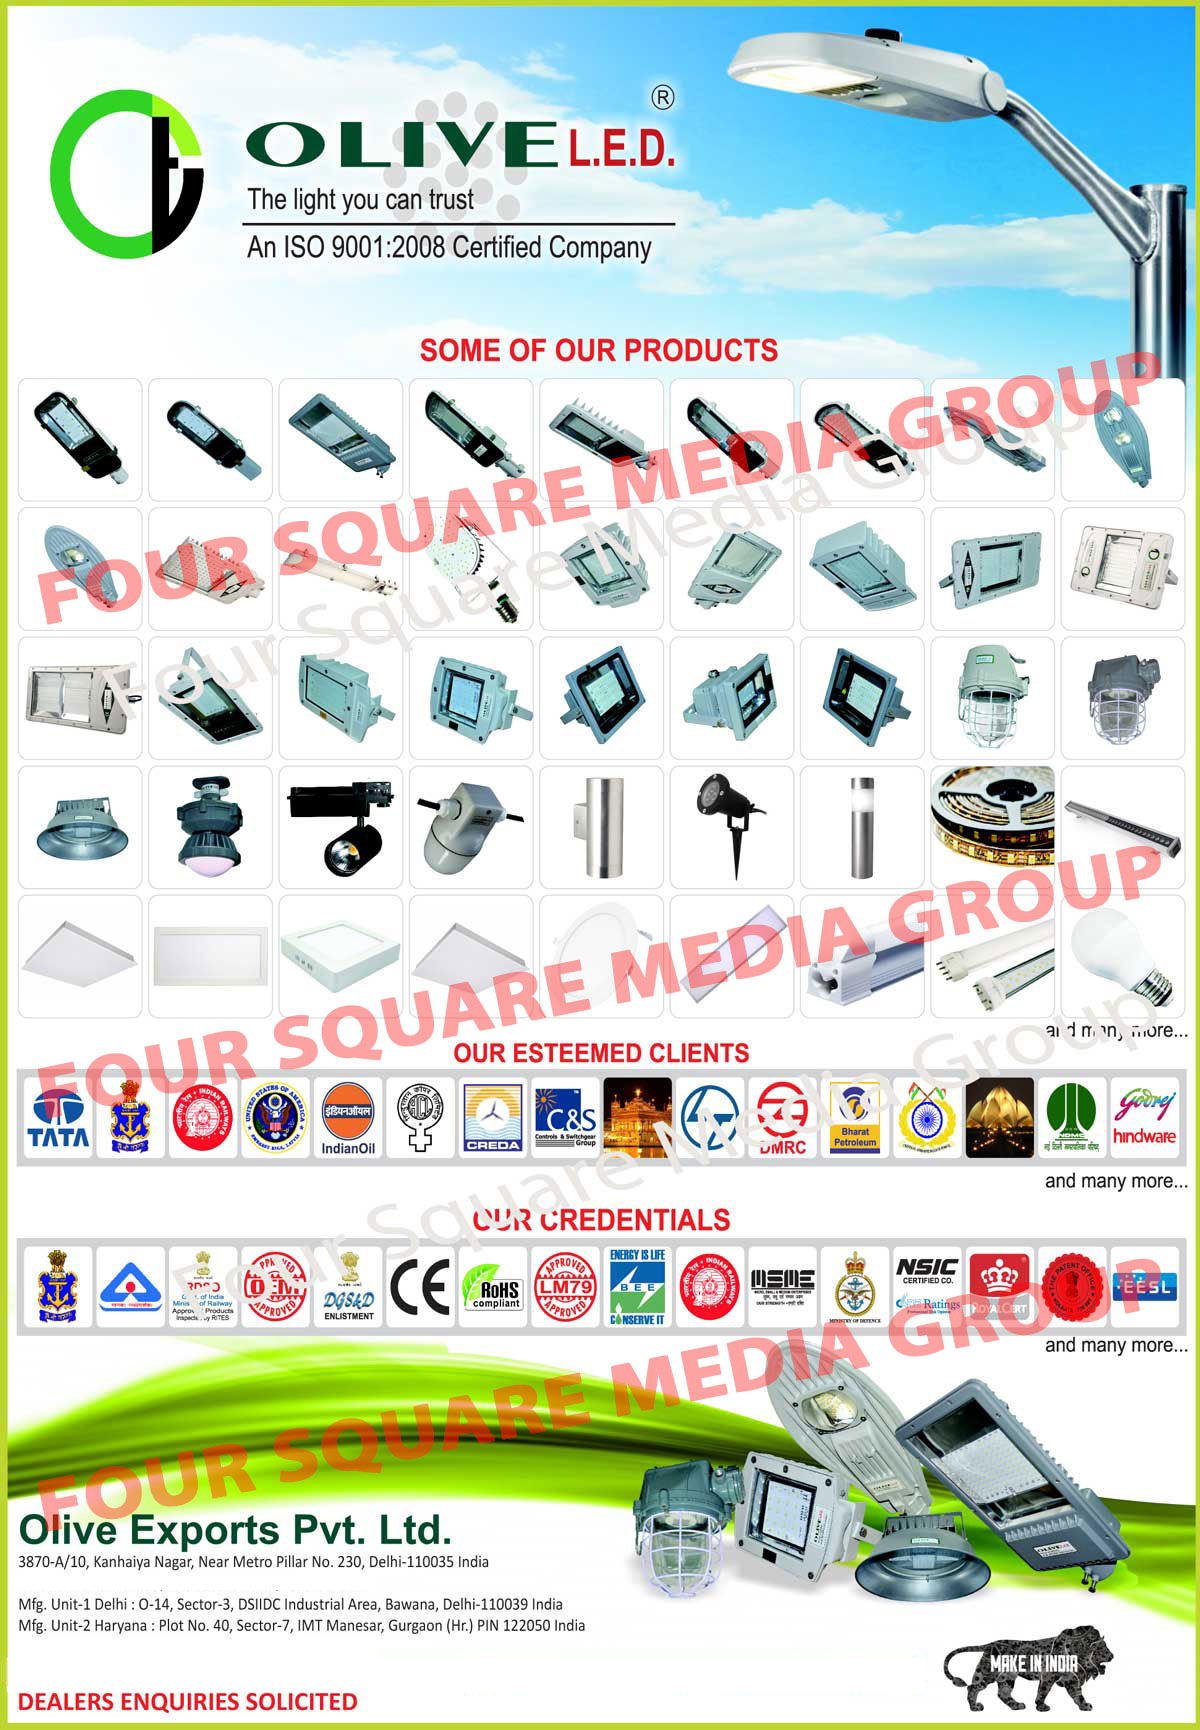 Led Surface Mounted Ceiling Lights, Led Lights, Led Down Lights, Led Balcony Lights, Led Street Lights, Led Bay Lights, Led Flood Lights, Led Spike Lights, Bollards, Led Bulbs, Led Track Lights, Led Panel Lights, Led Ceiling Lights, Led Cover Lights, Wall Washer Lights, Led Strip Lights, Led Brick Lights, Led Lamps, Led stitching Machine Lights, Ceiling Lights, Surface Mounted Lights, Led Downlights